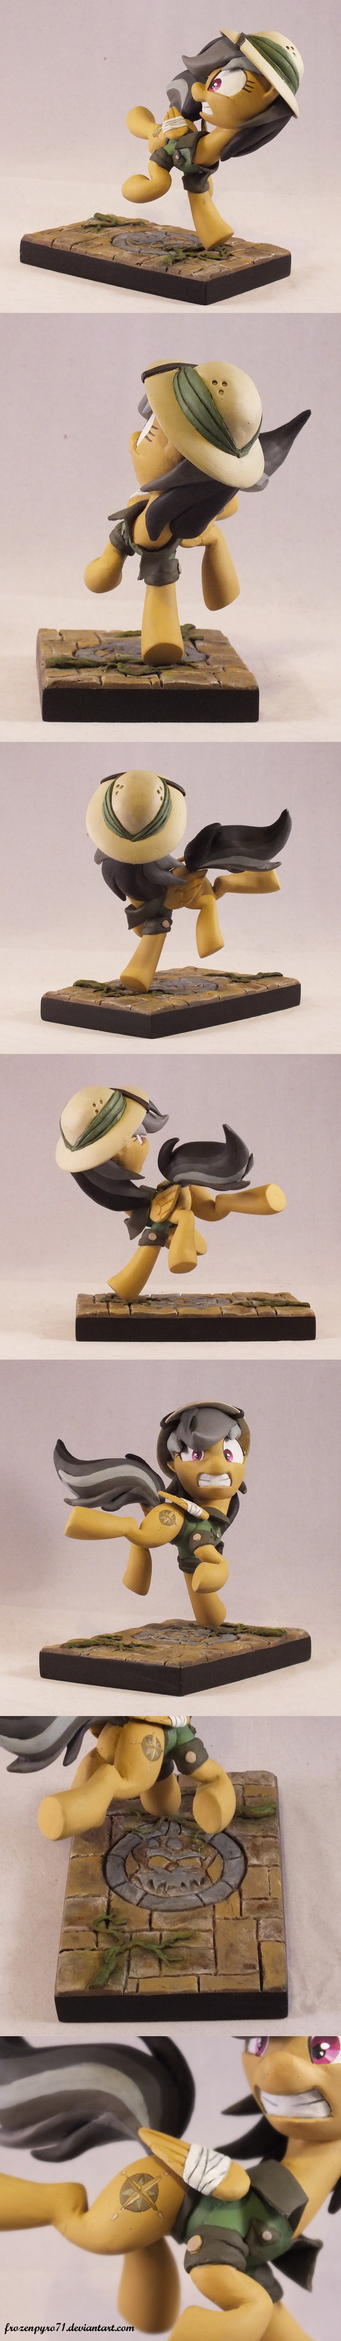 Daring Do - Spin by frozenpyro71